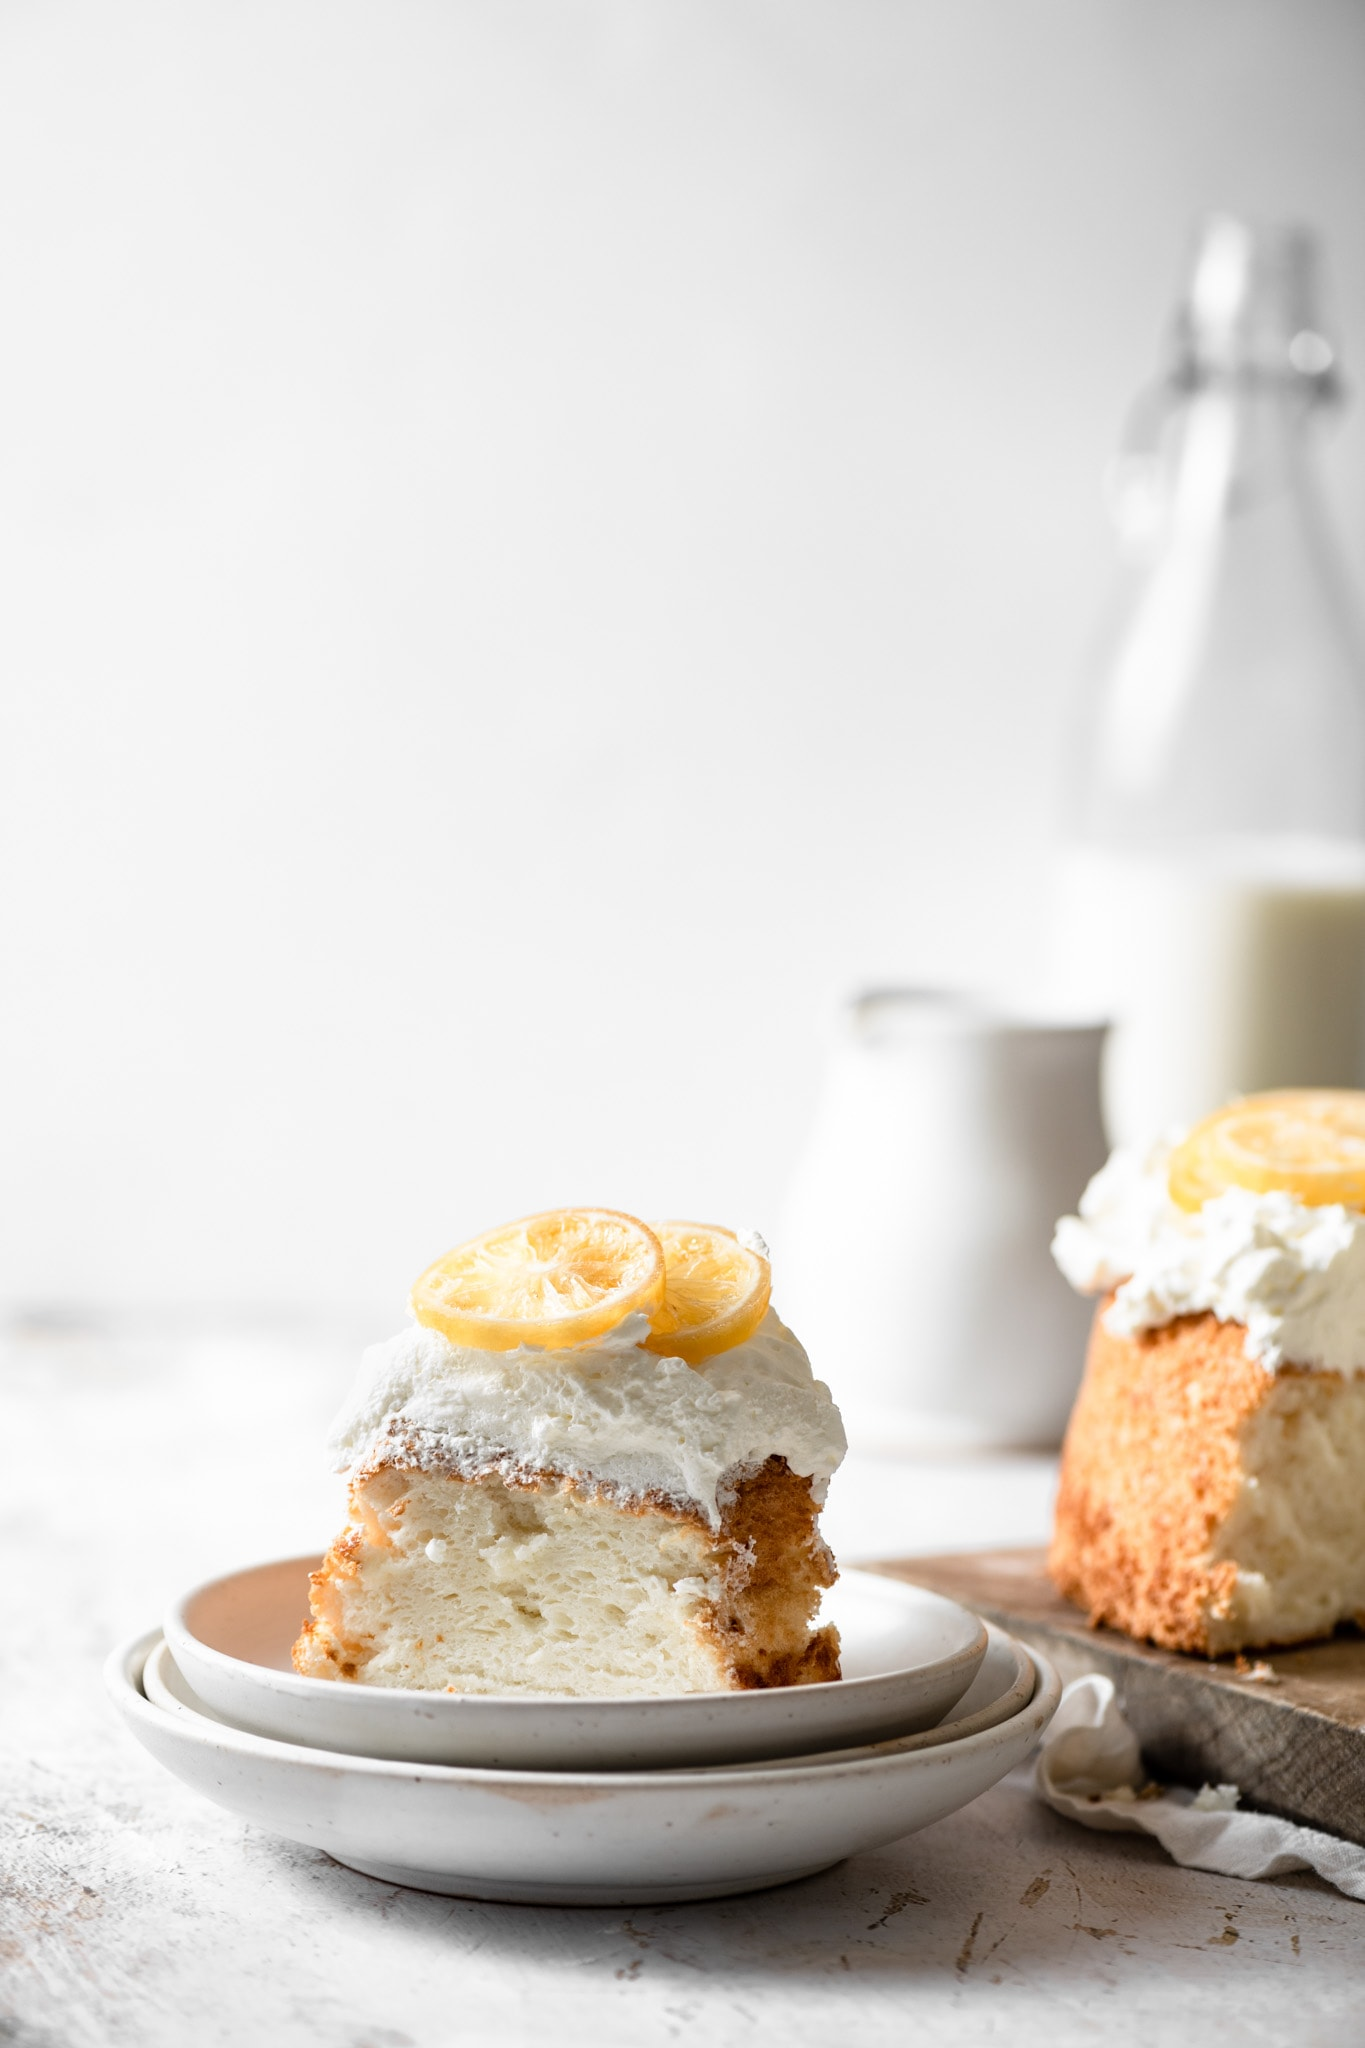 Angel Food Cake with candied lemons and glass of milk.